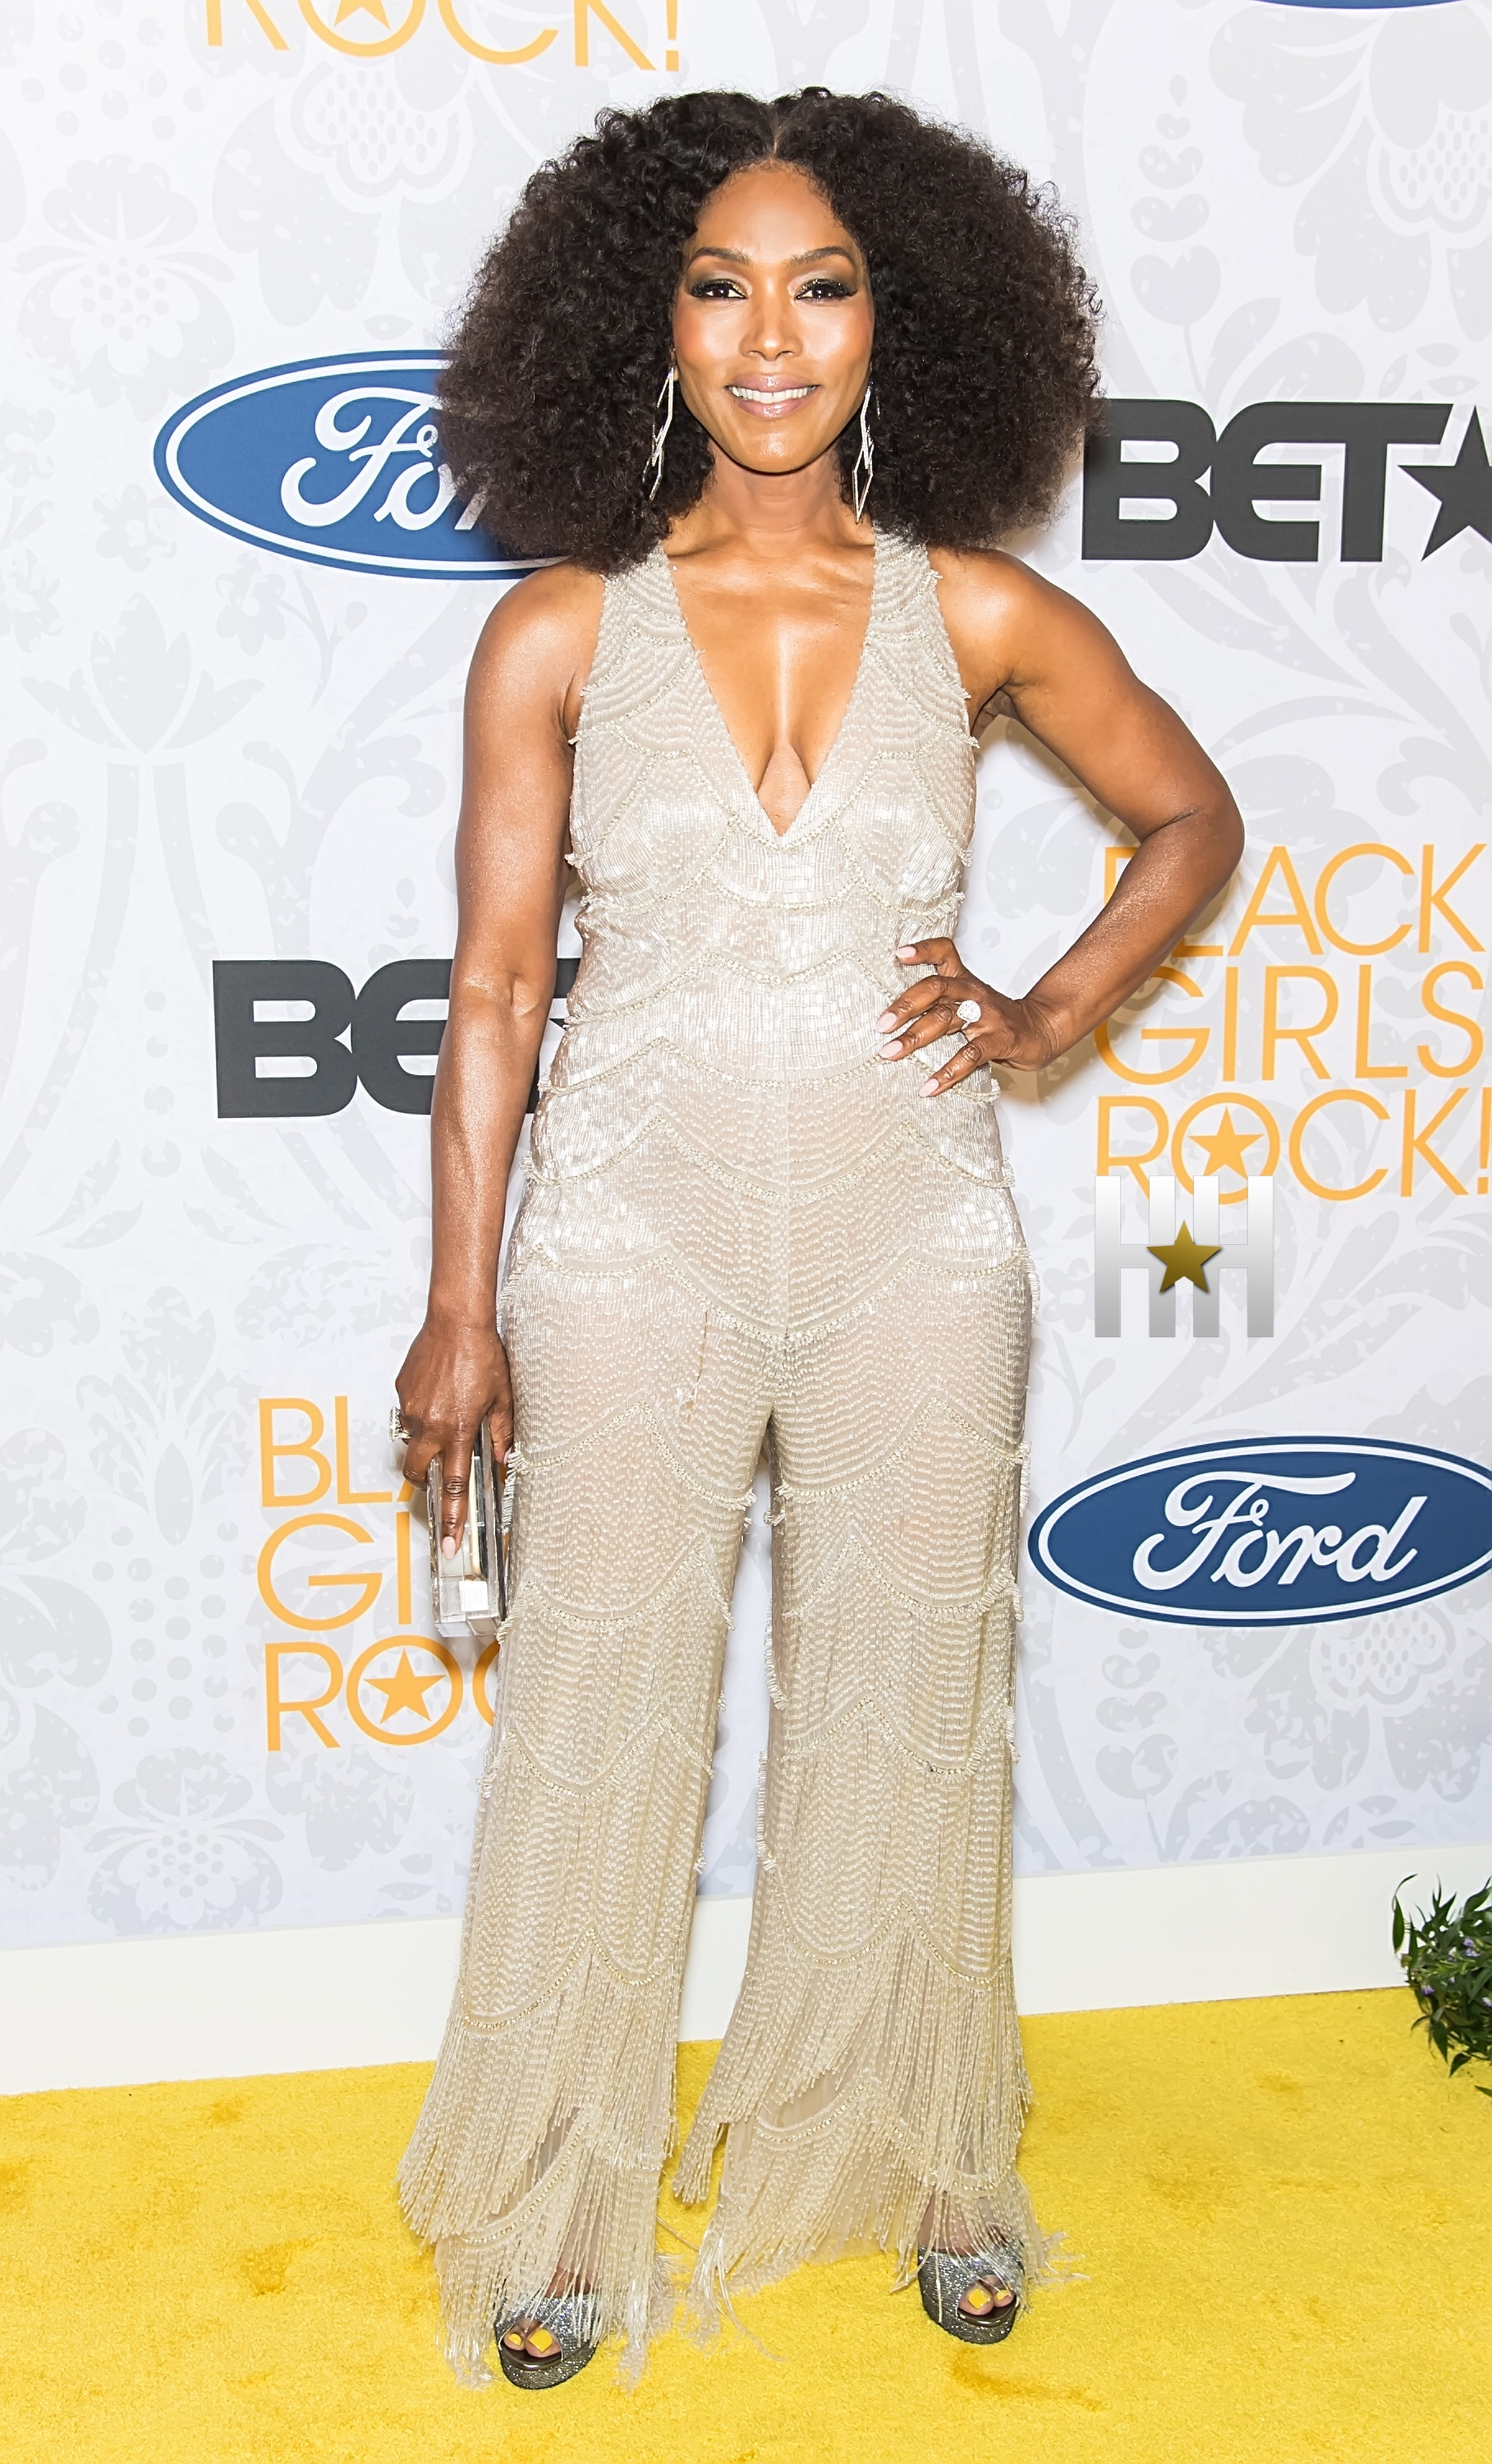 NEWARK, NJ – AUGUST 25:  Actress and Icon Award recipient Angela Bassett attends 2019 Black Girls Rock! at NJ Performing Arts Center on August 25, 2019 in Newark, New Jersey.  (Photo by Gilbert Carrasquillo/Getty Images)